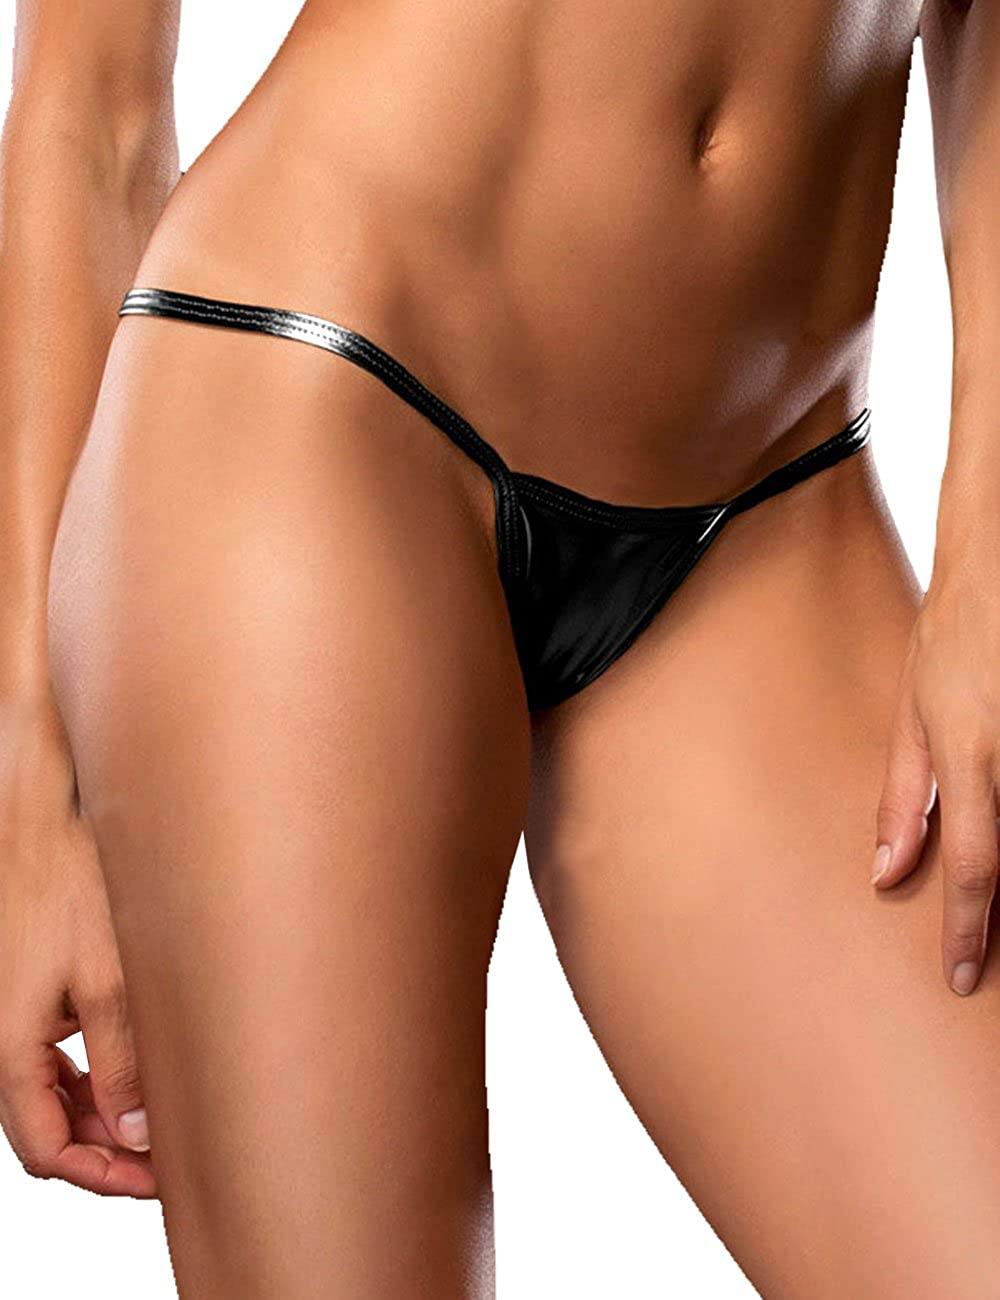 Dong Dian Women s Shiny Micro Panties Club Wear G-String Thong Black at  Amazon Women s Clothing store  a92d77746